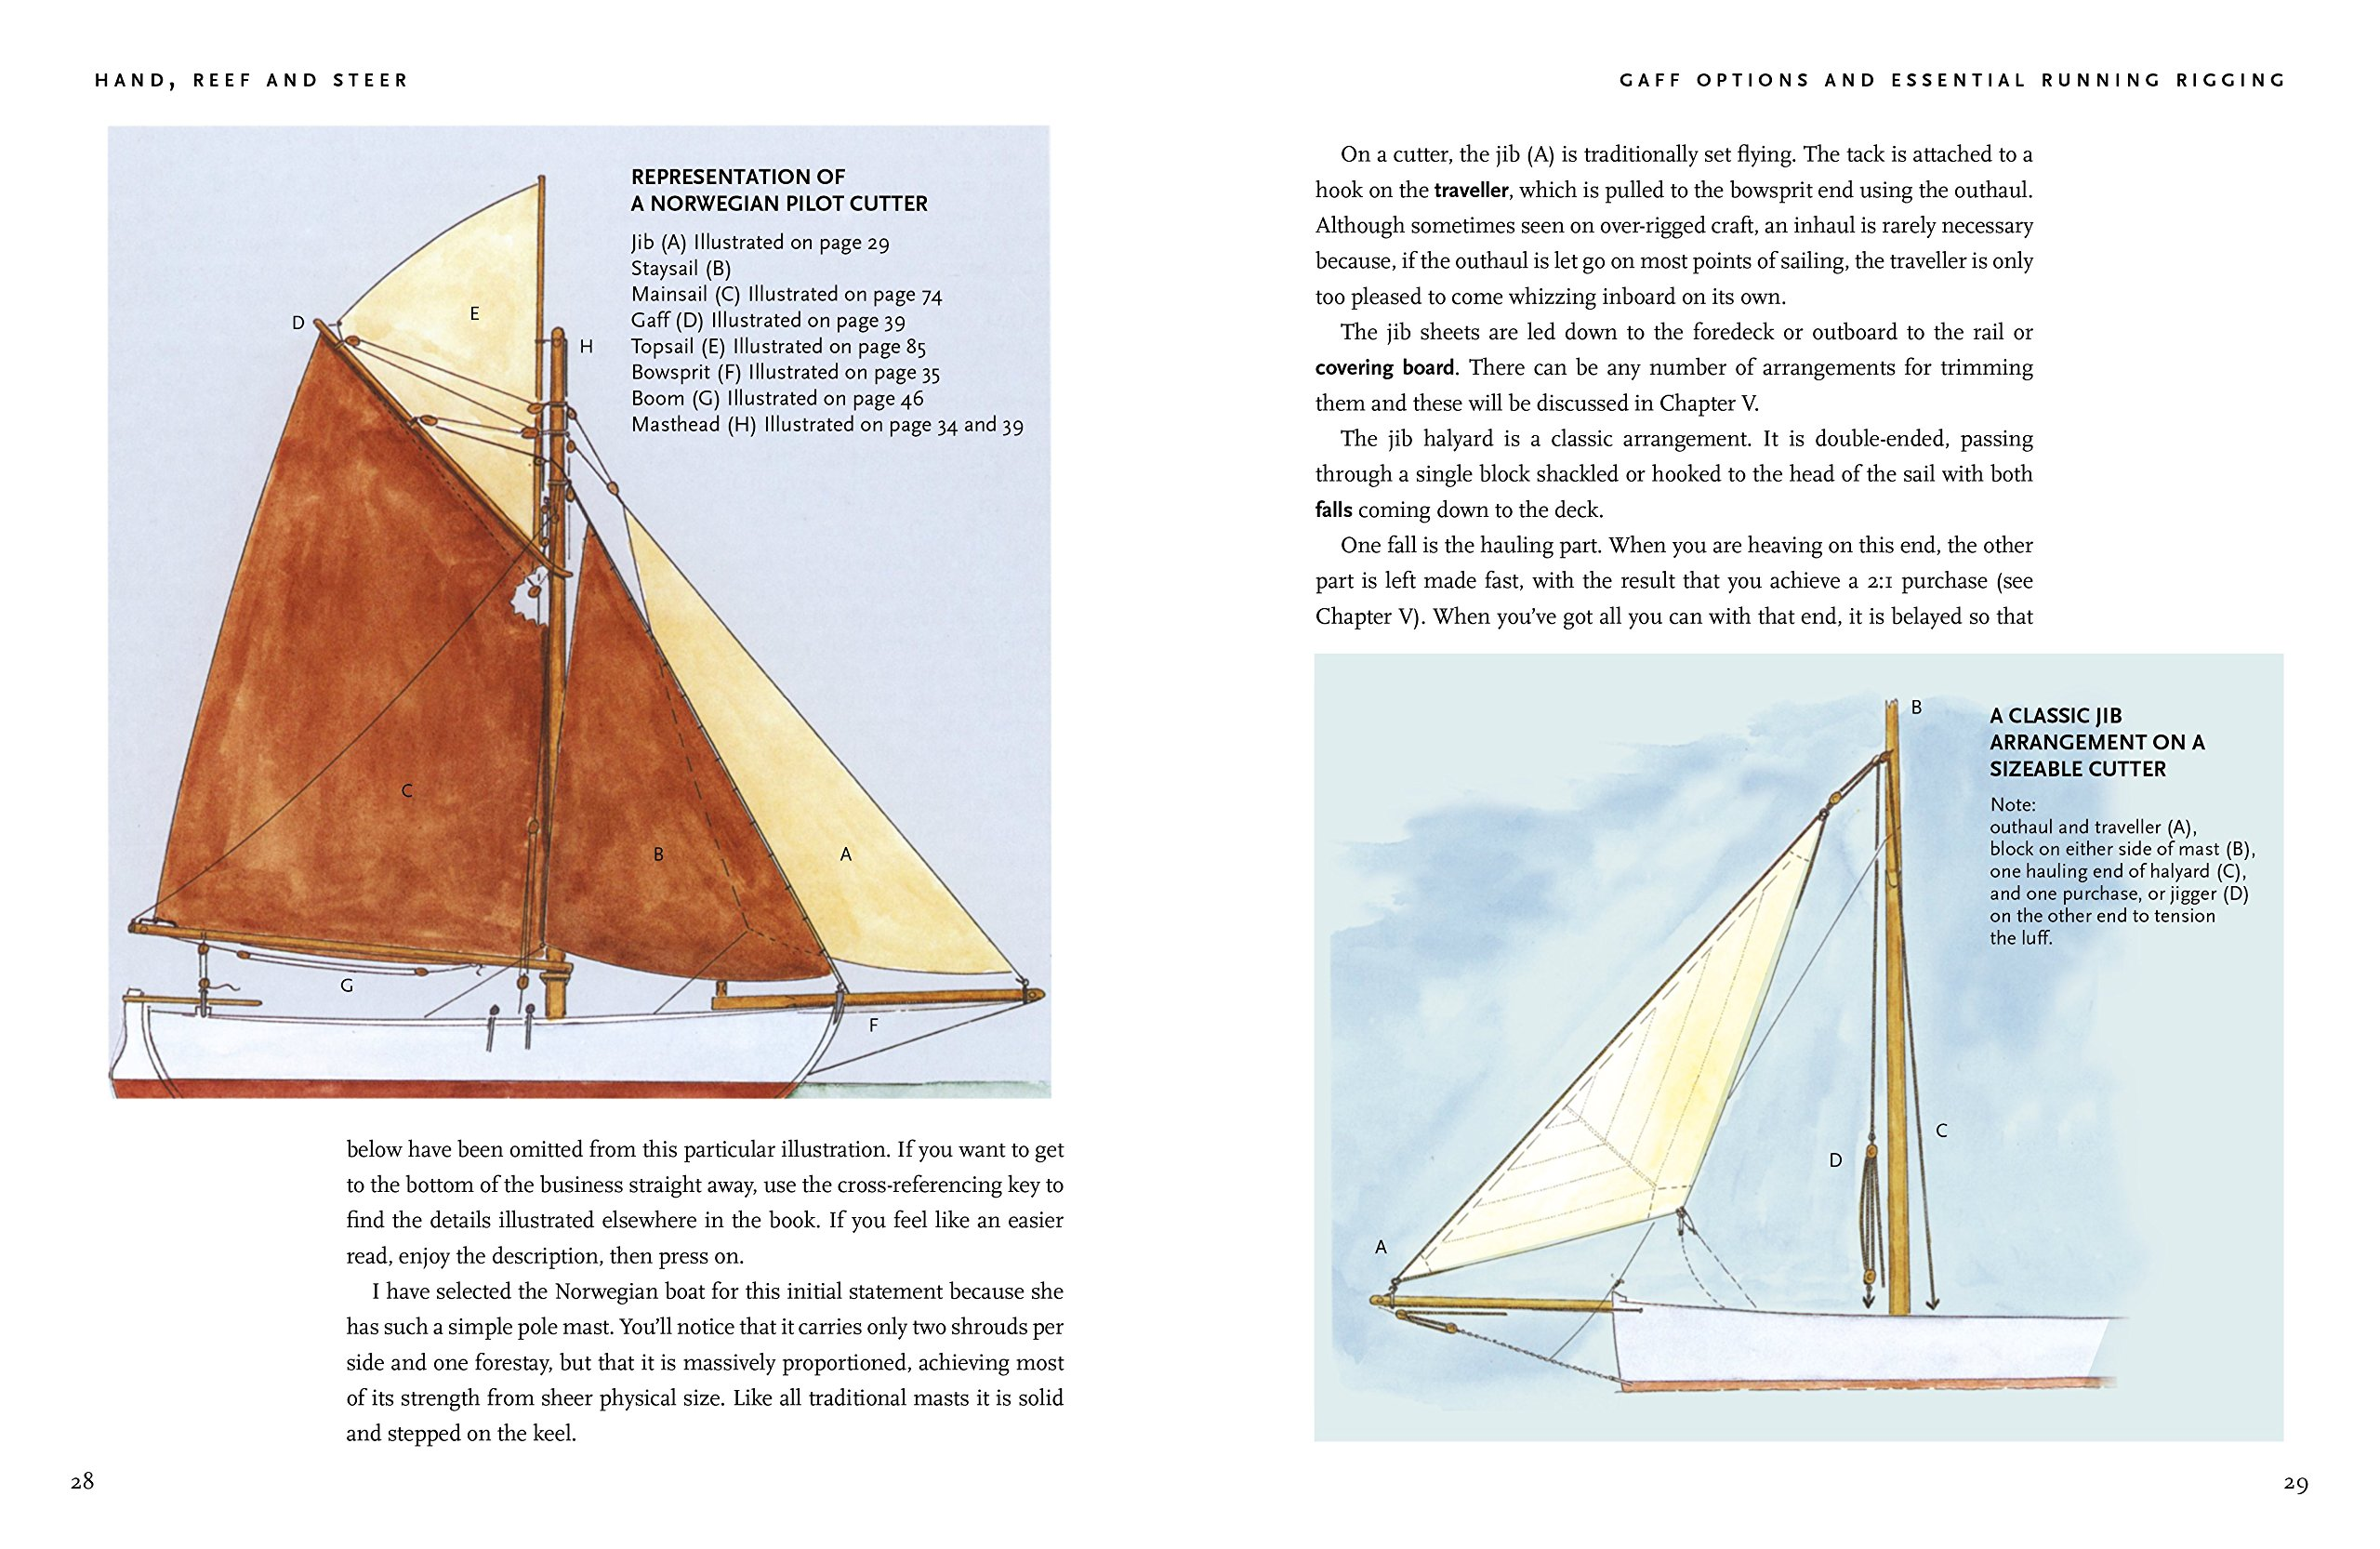 Hand, Reef and Steer 2nd edition: Traditional Sailing Skills